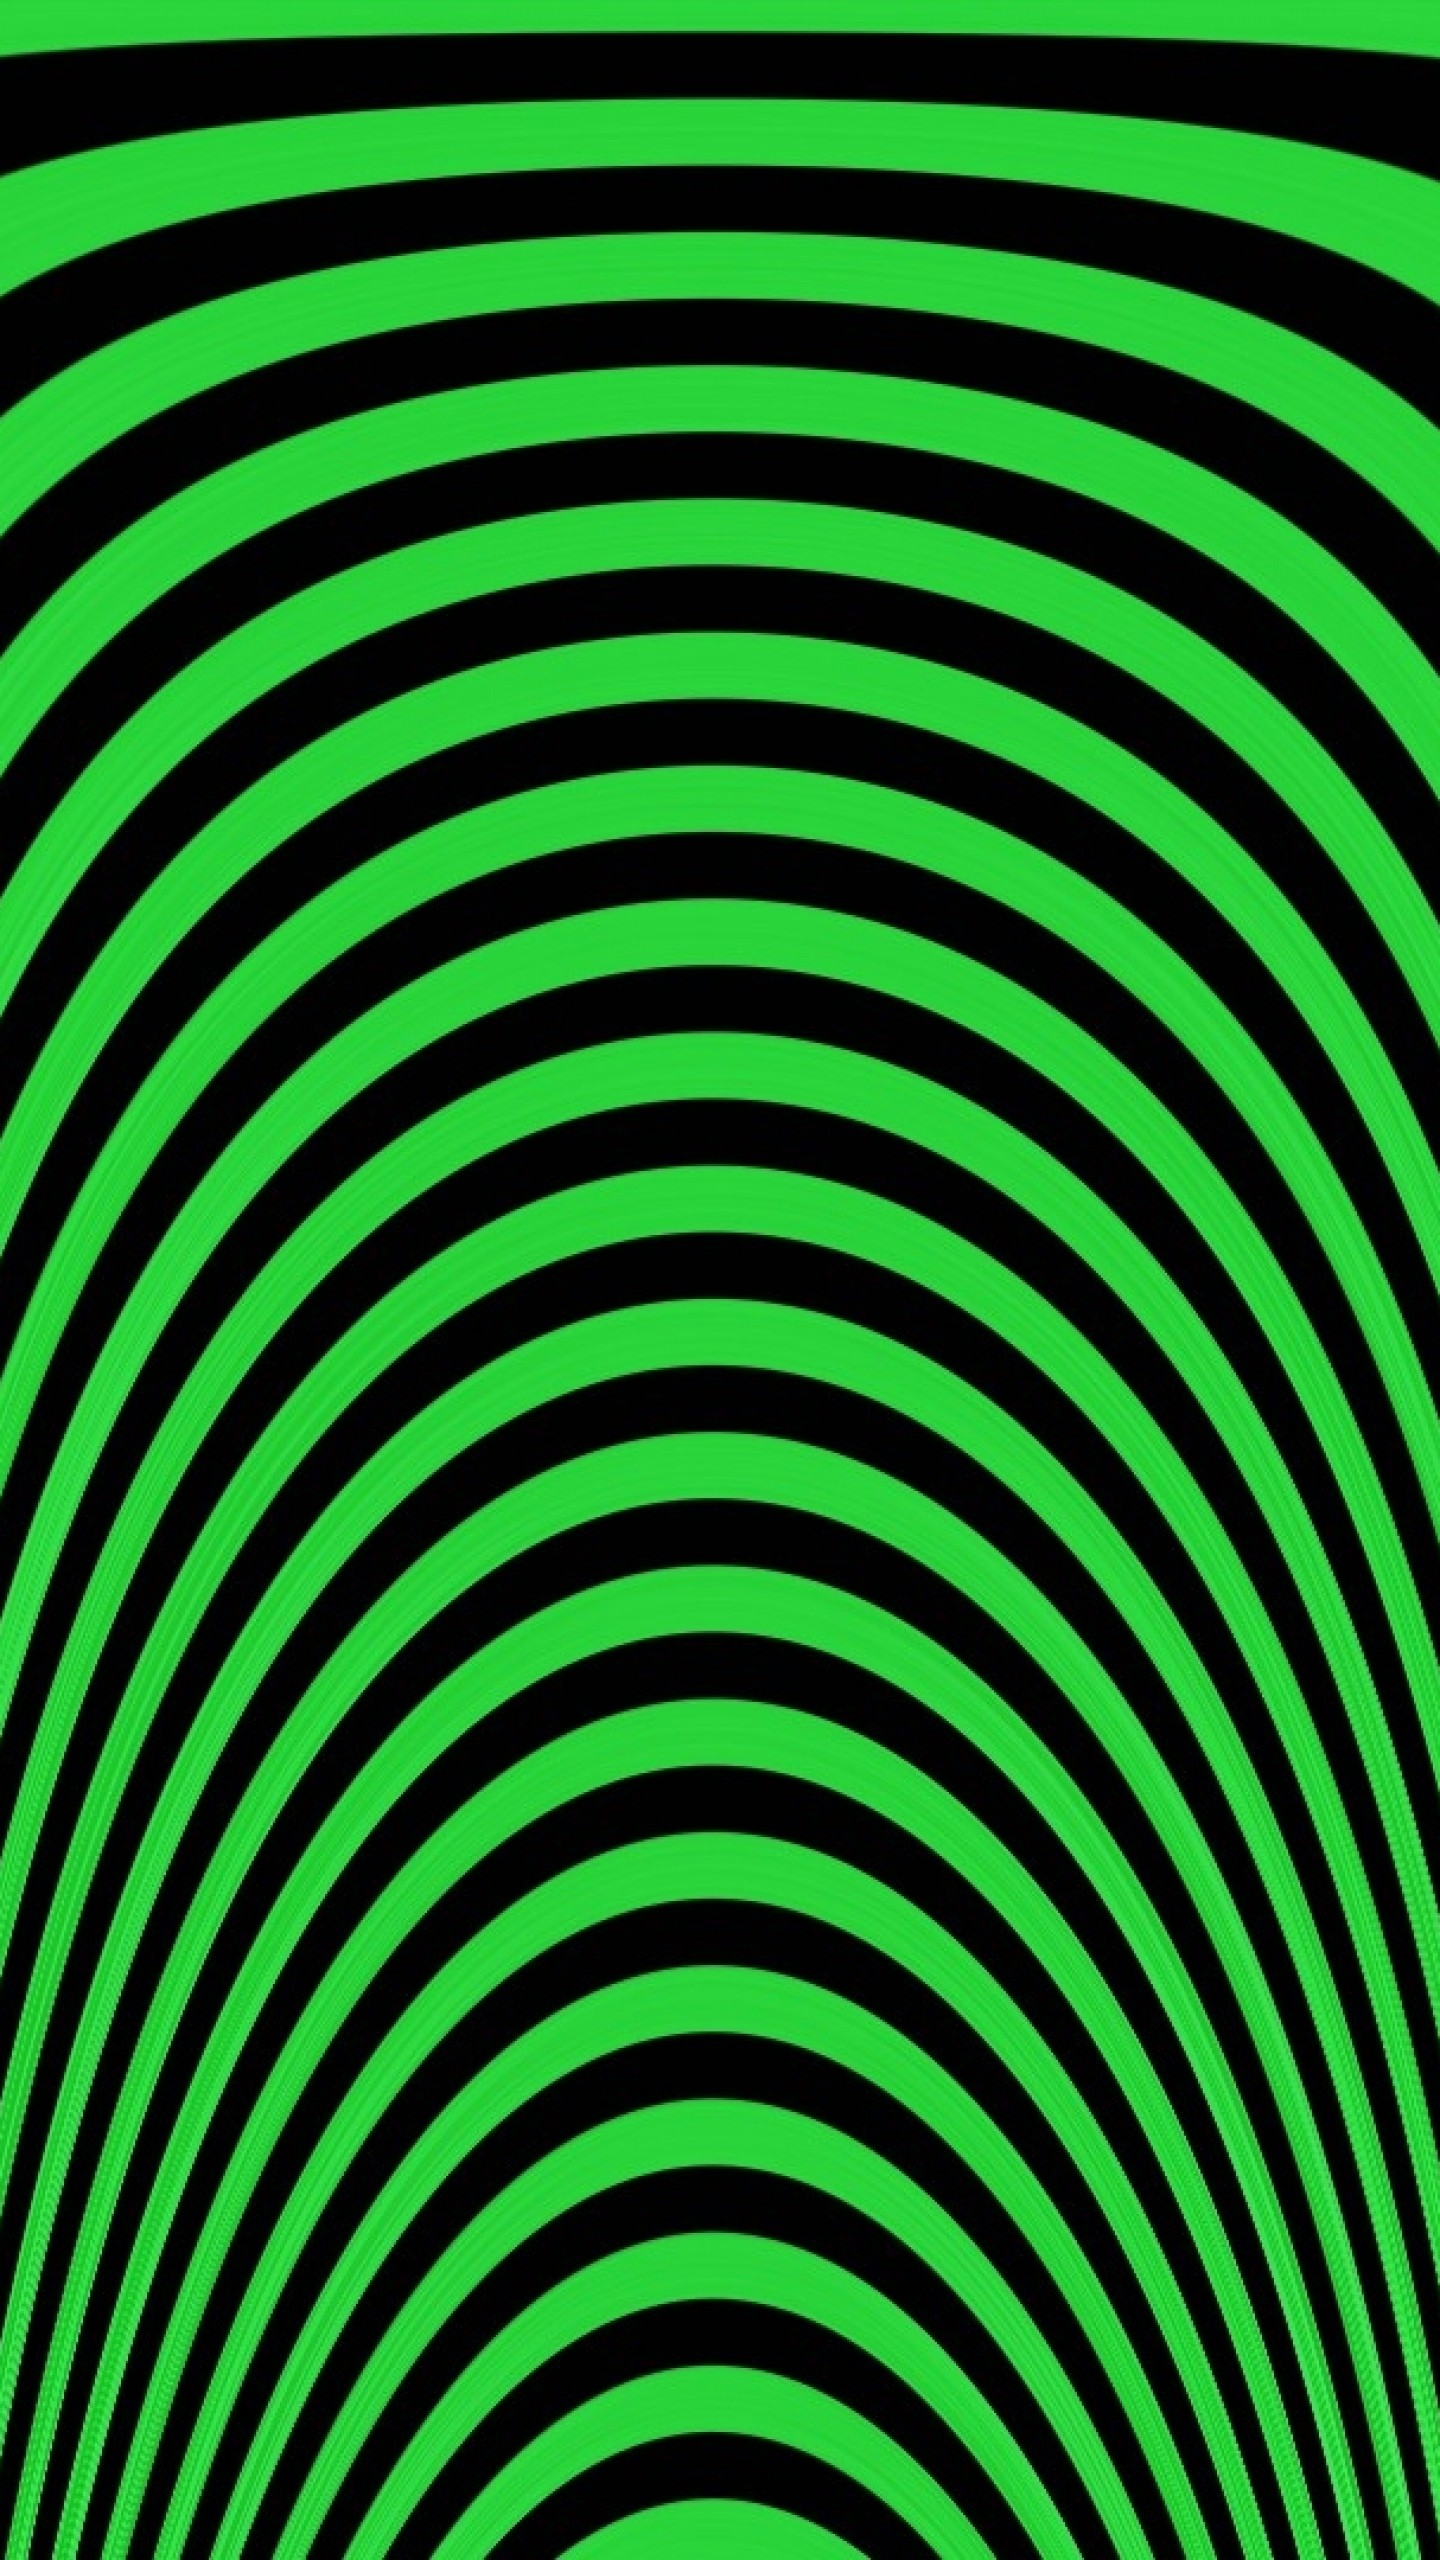 optical illusion iphone wallpaper 59 images